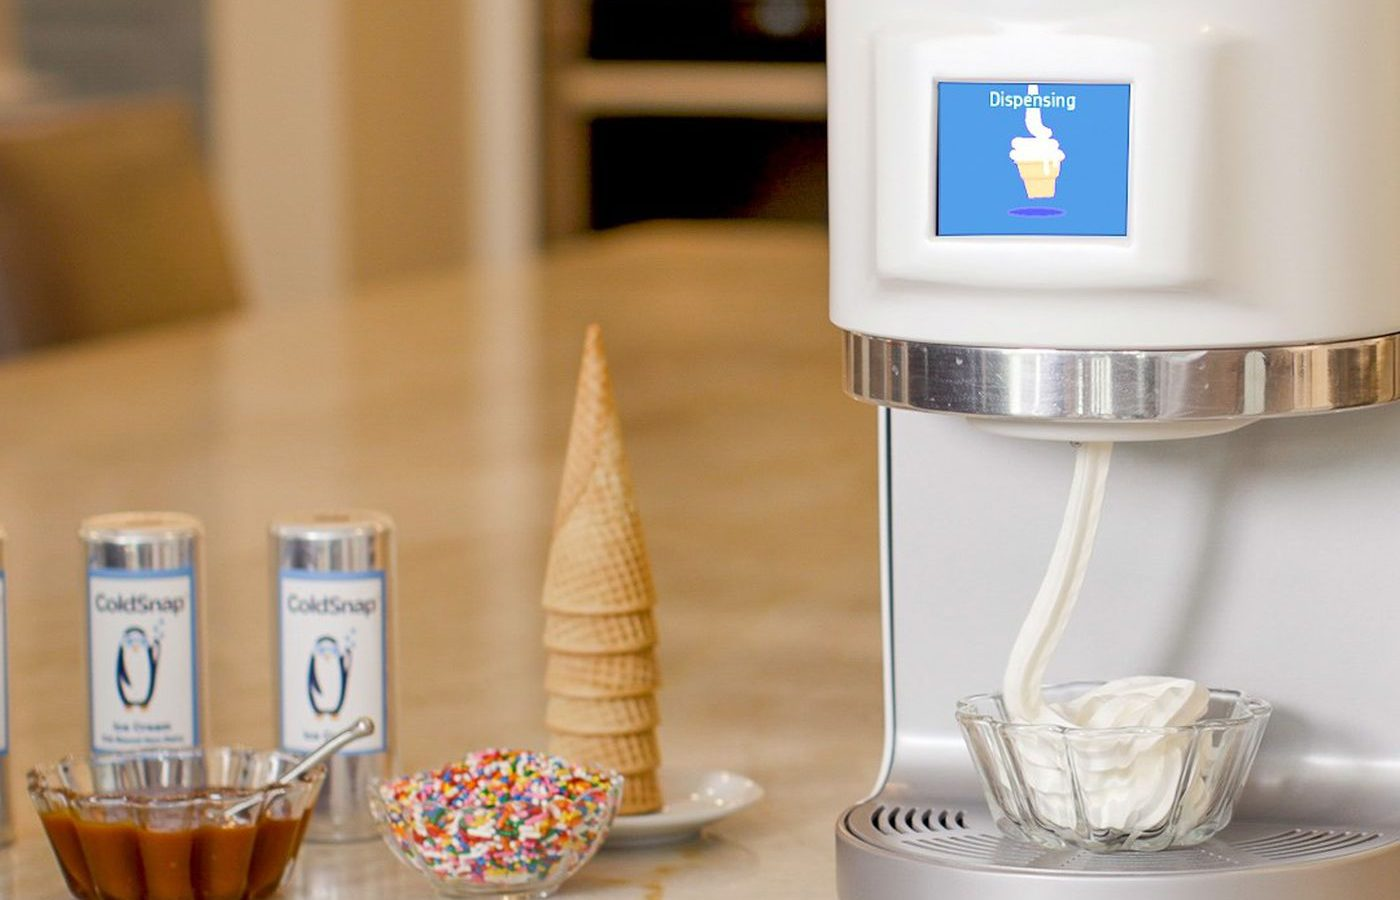 ColdSnap makes soft-serve ice cream from pods in less than 2 minutes